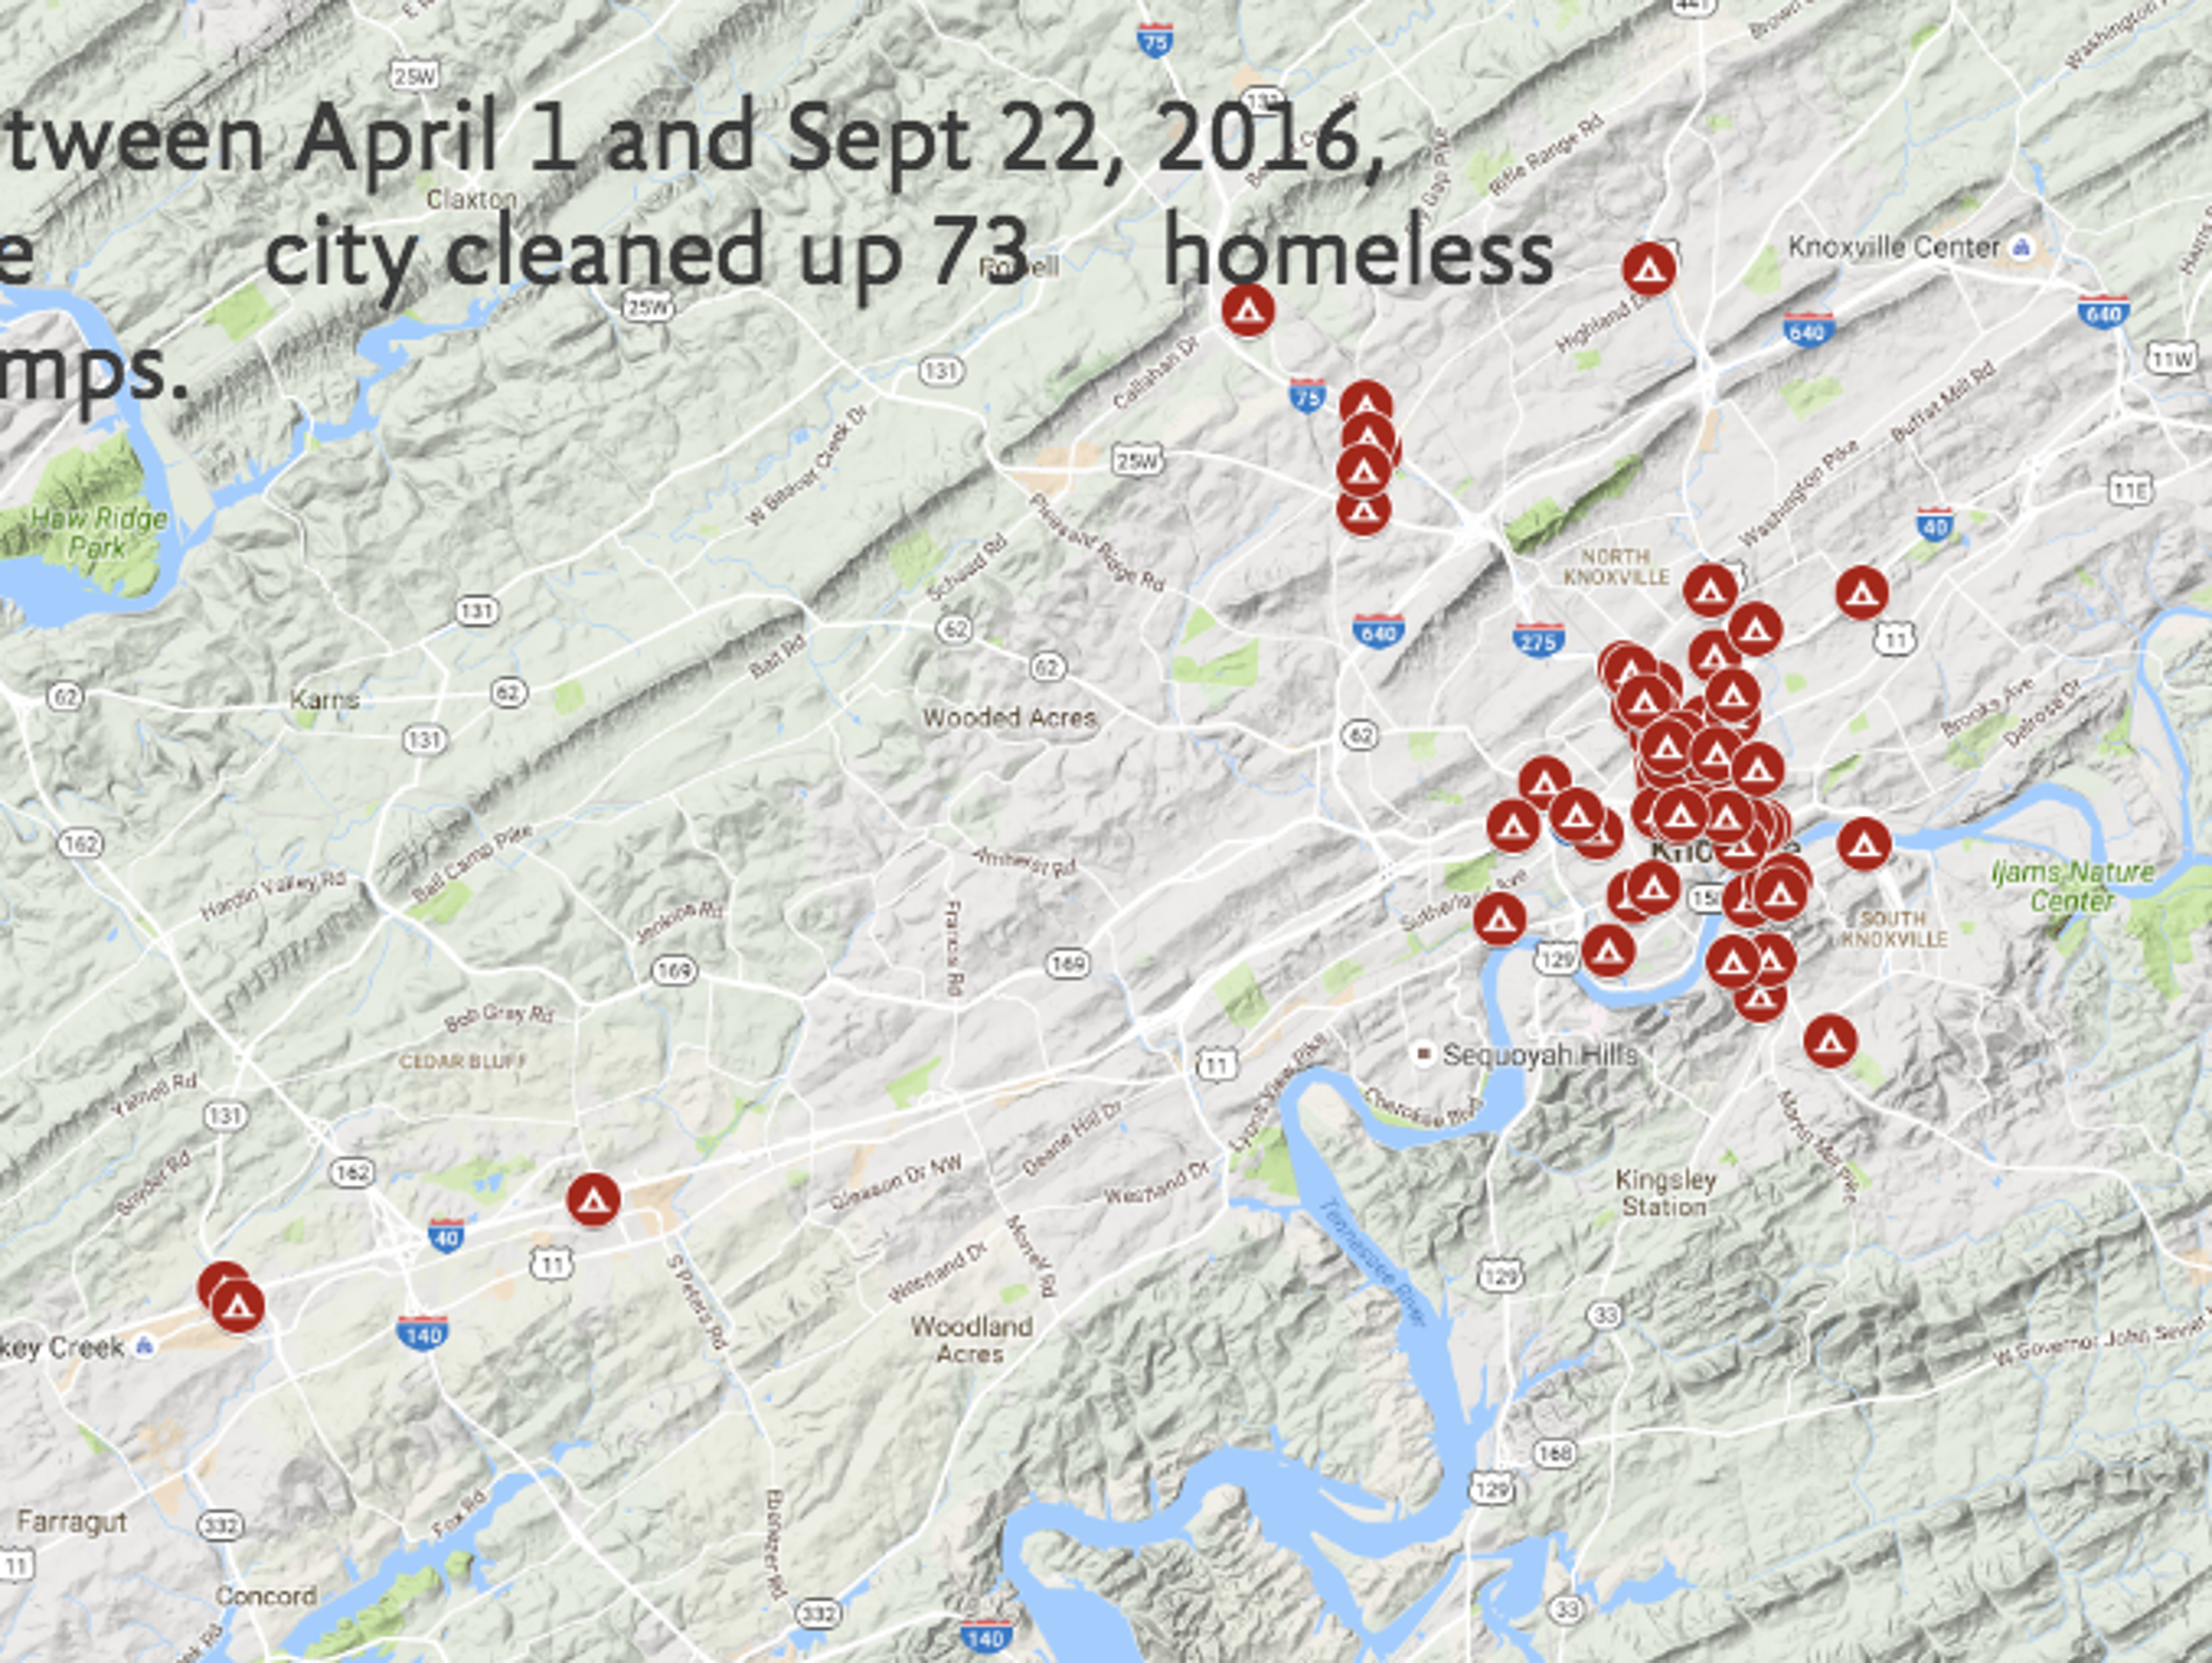 Homeless Camps In The Knoxville Area